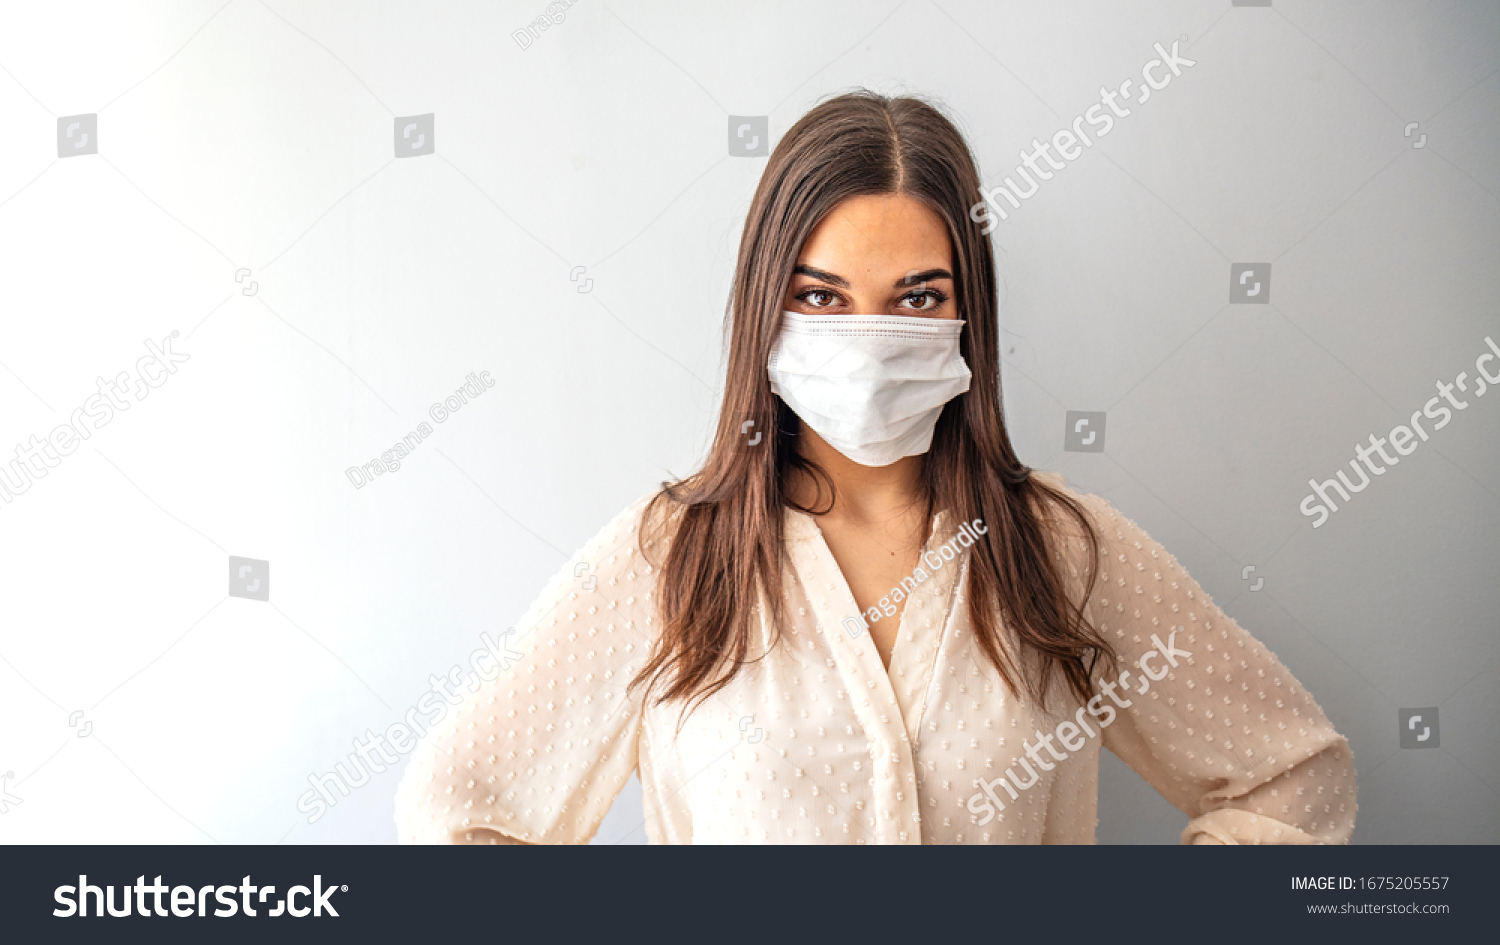 Girl in respiratory mask. Masked woman looks at camera. Cold, flu, virus, tonsillitis, respiratory disease, quarantine, epidemic concept. Beautiful caucasian young woman with disposable face mask #1675205557